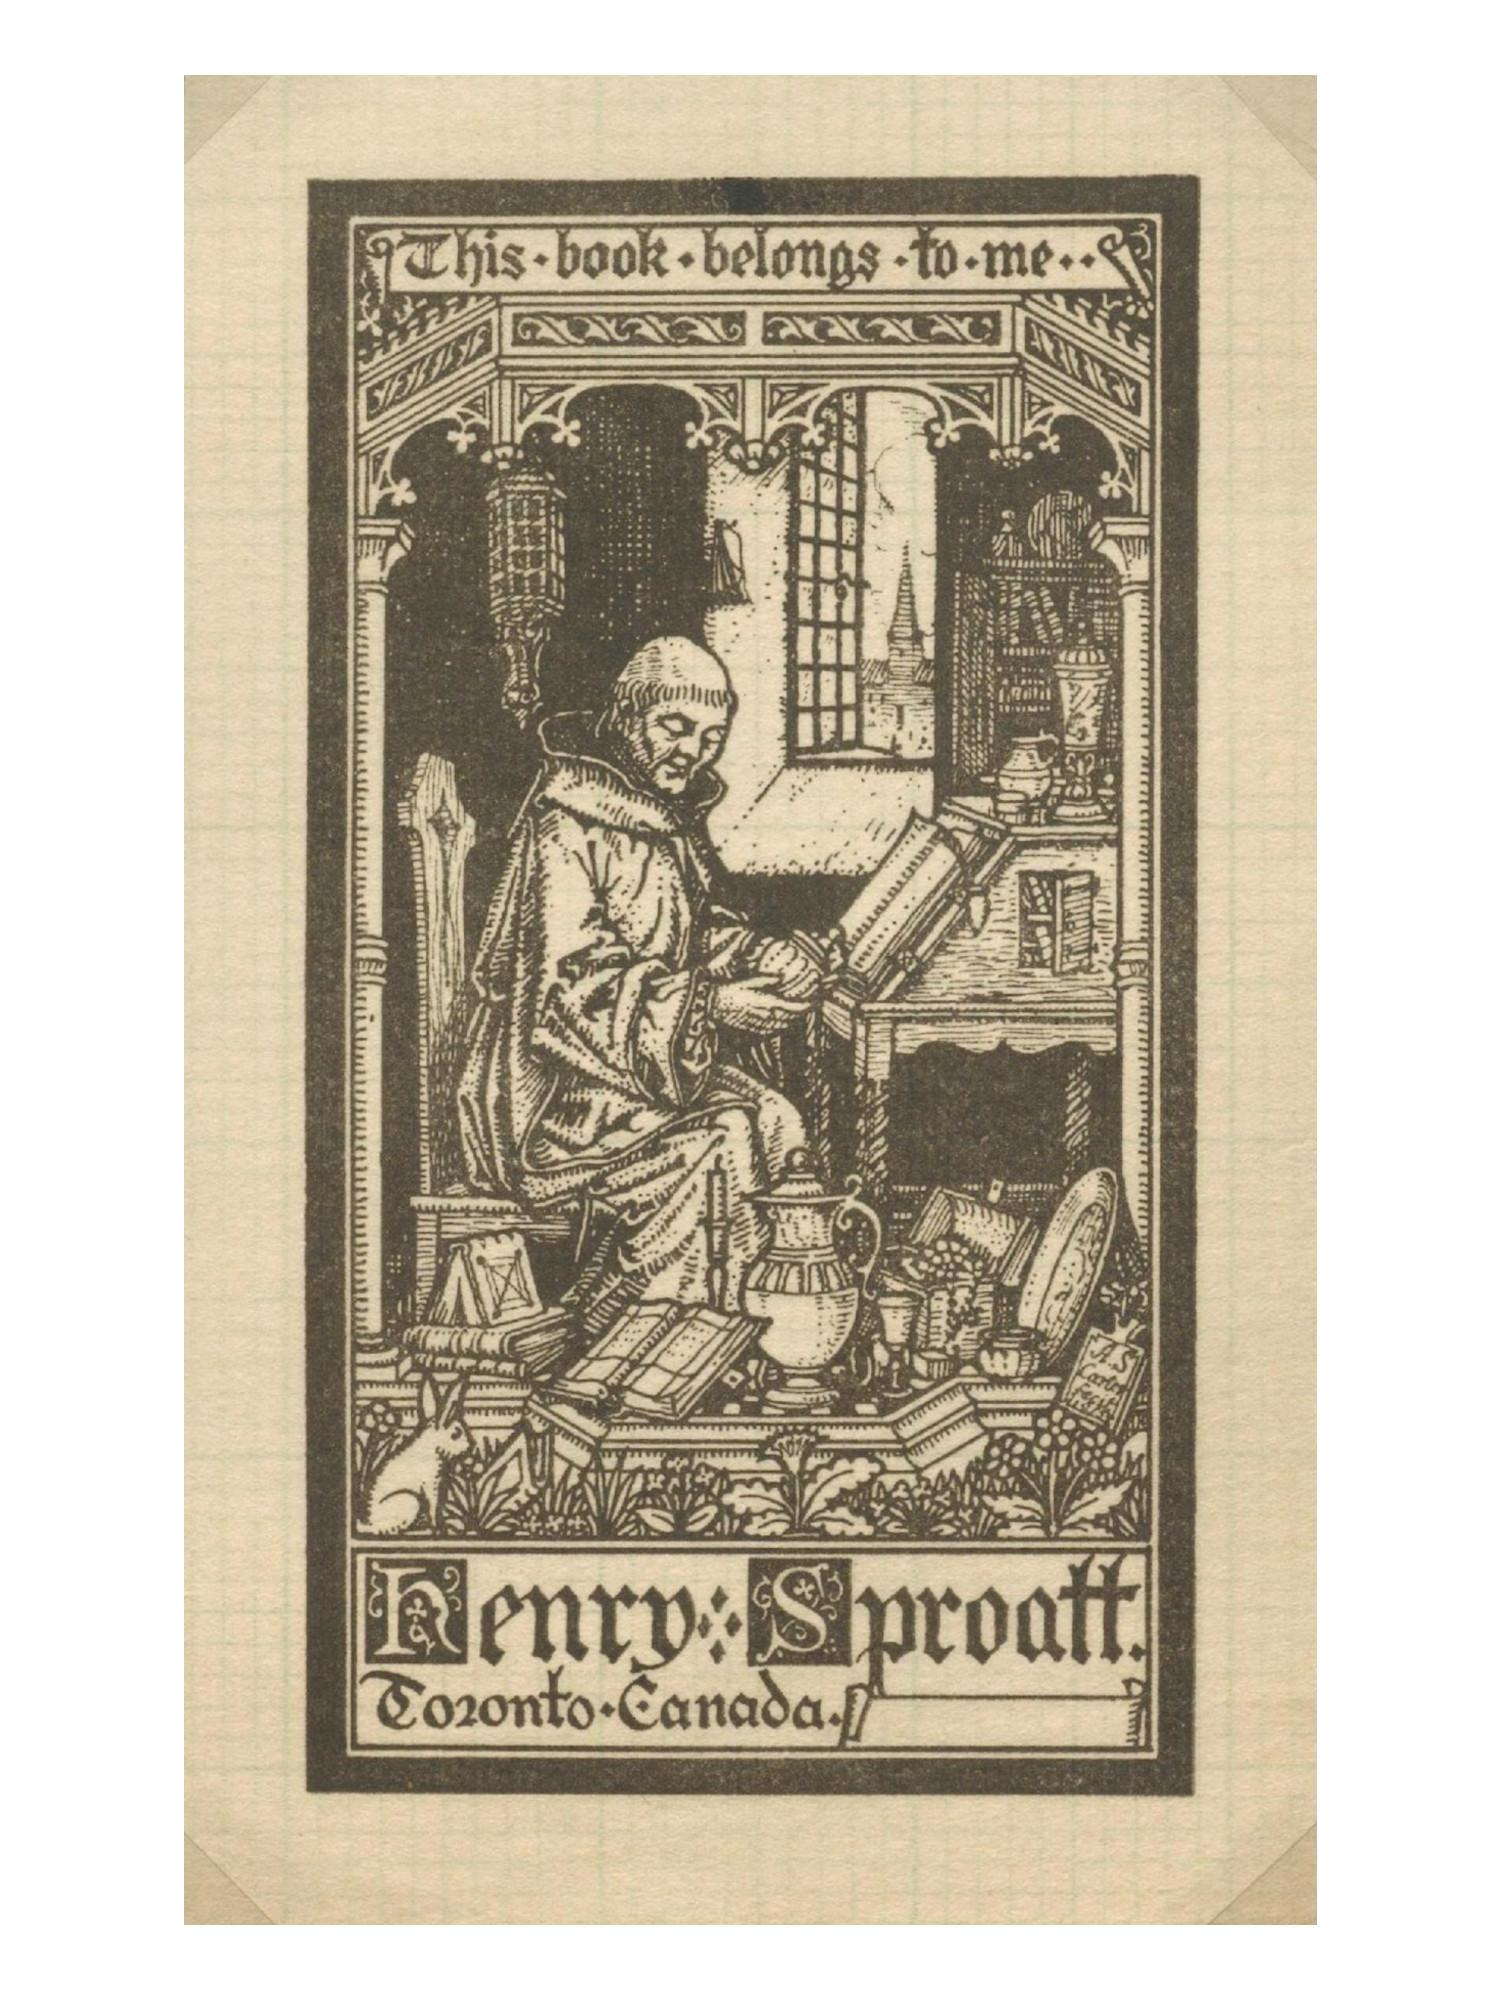 Bookplate by Alexander Scott Carter